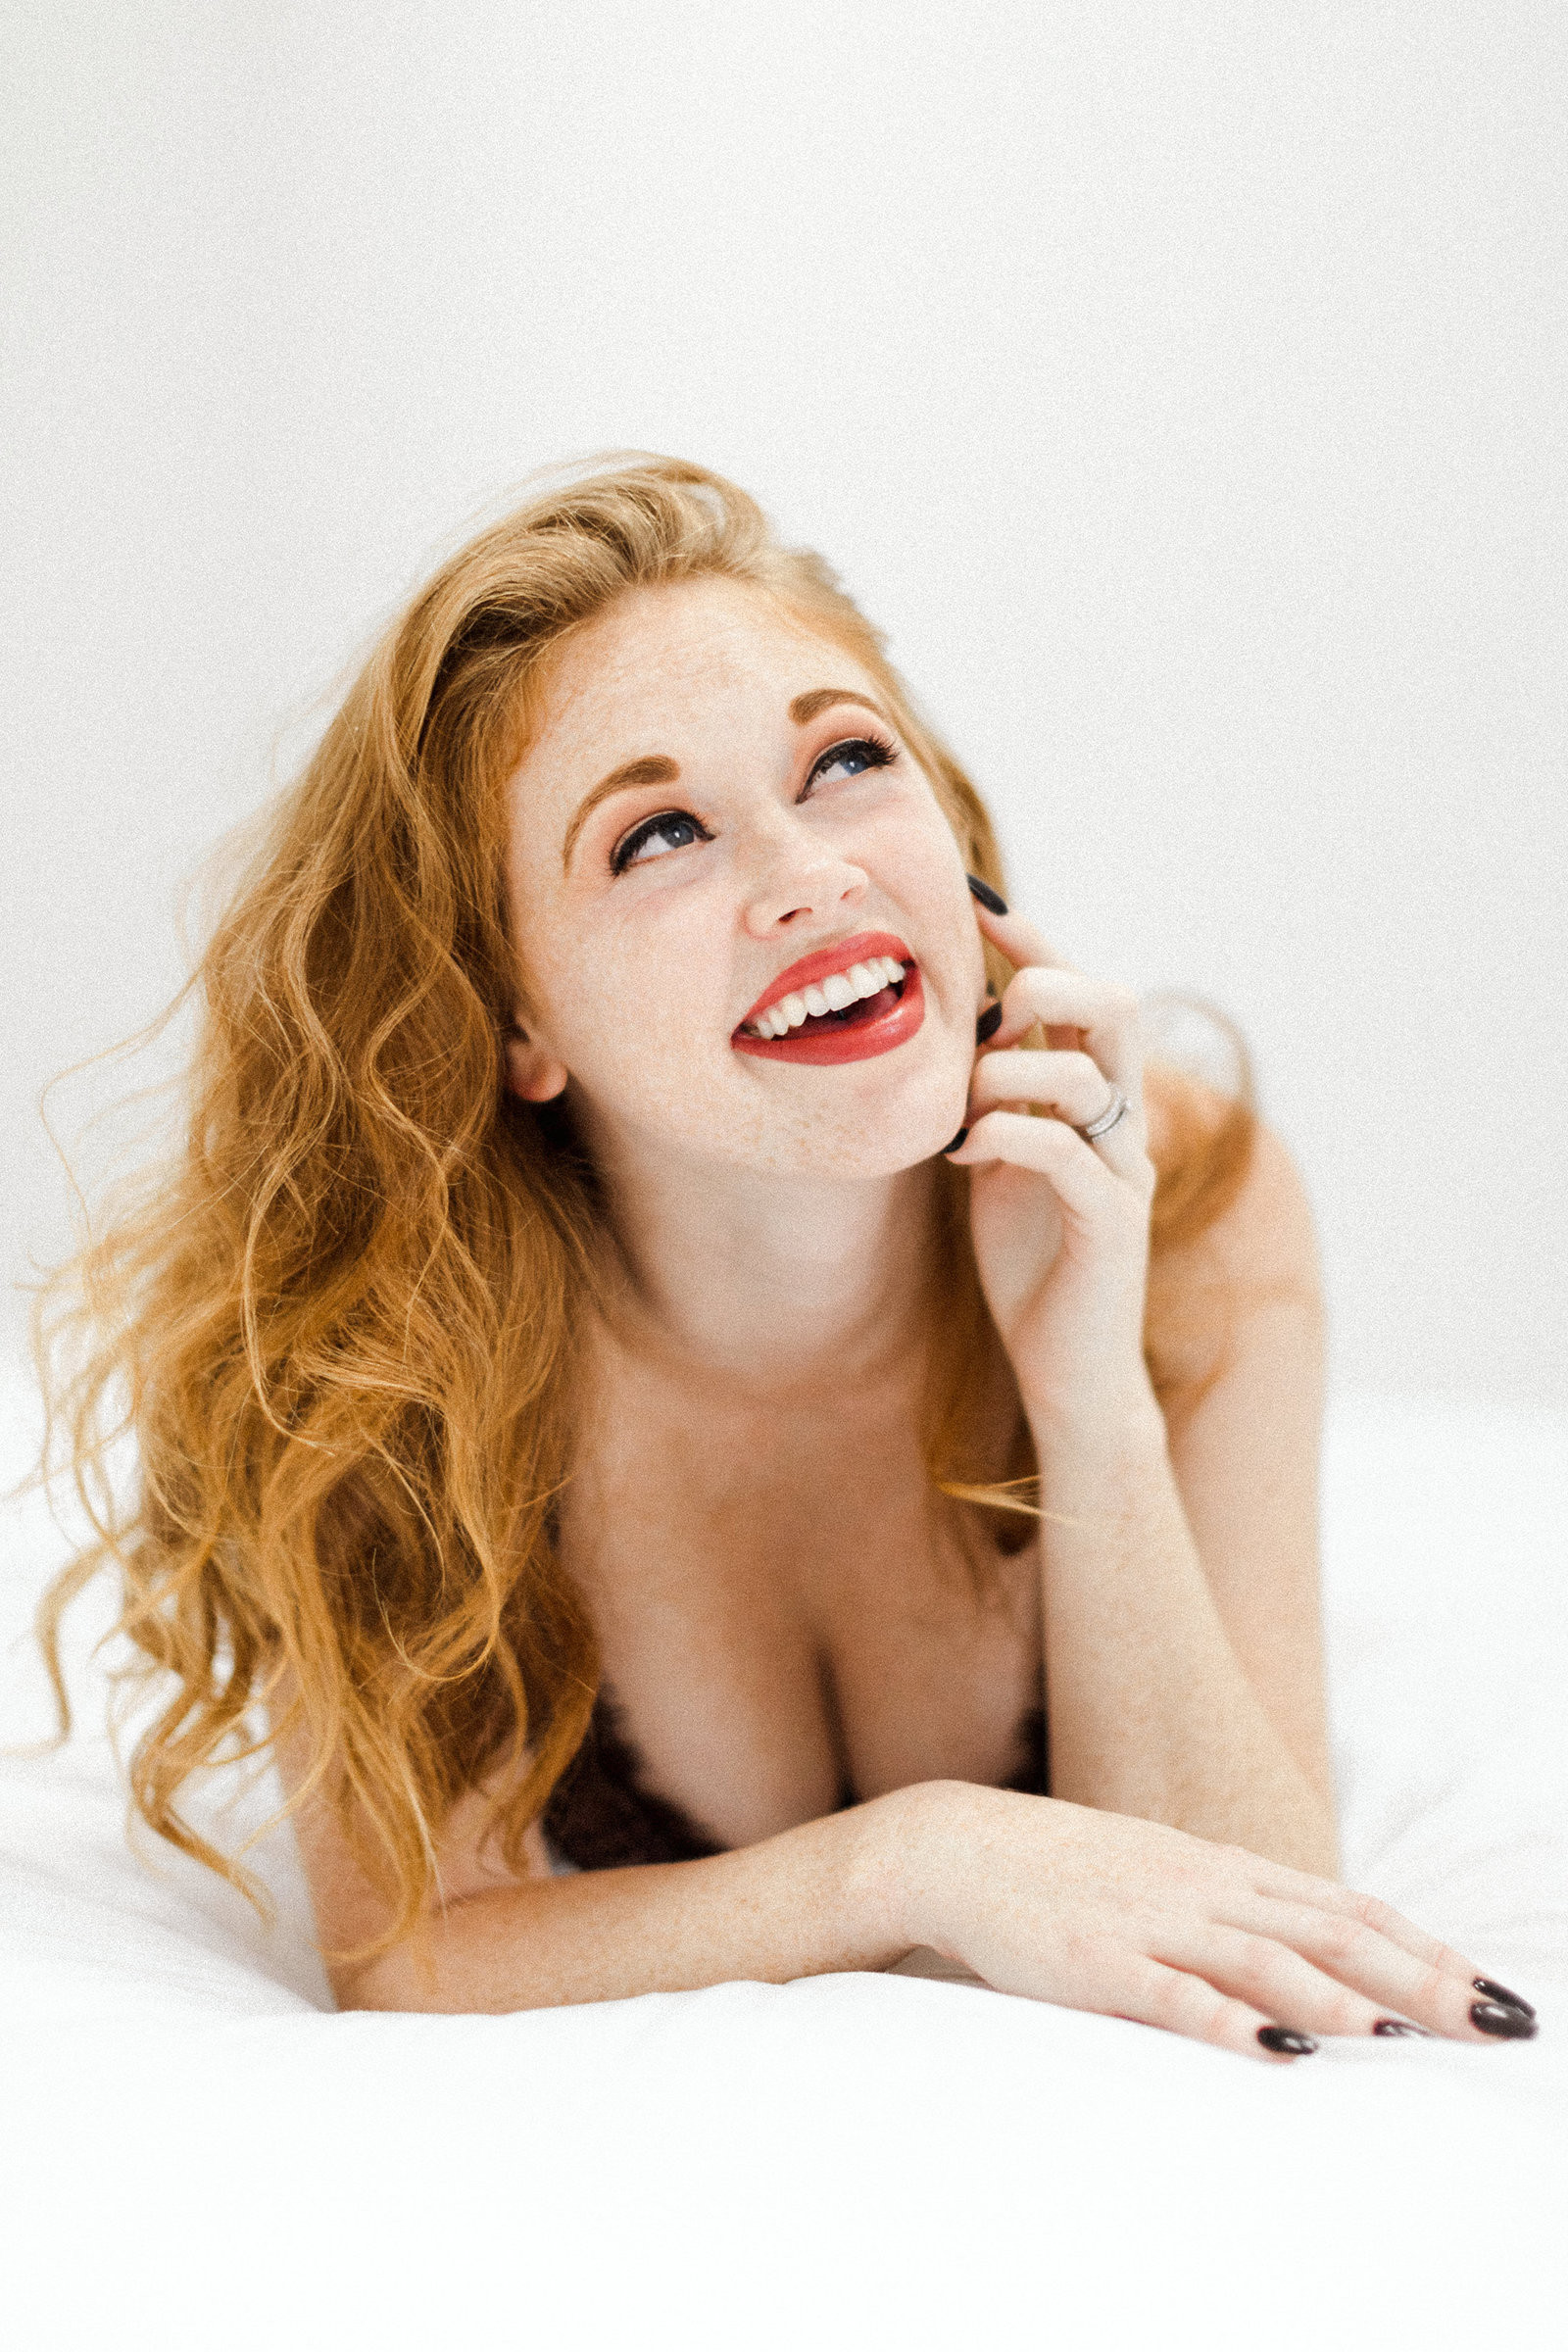 laughing girl red hair lipstick on bed